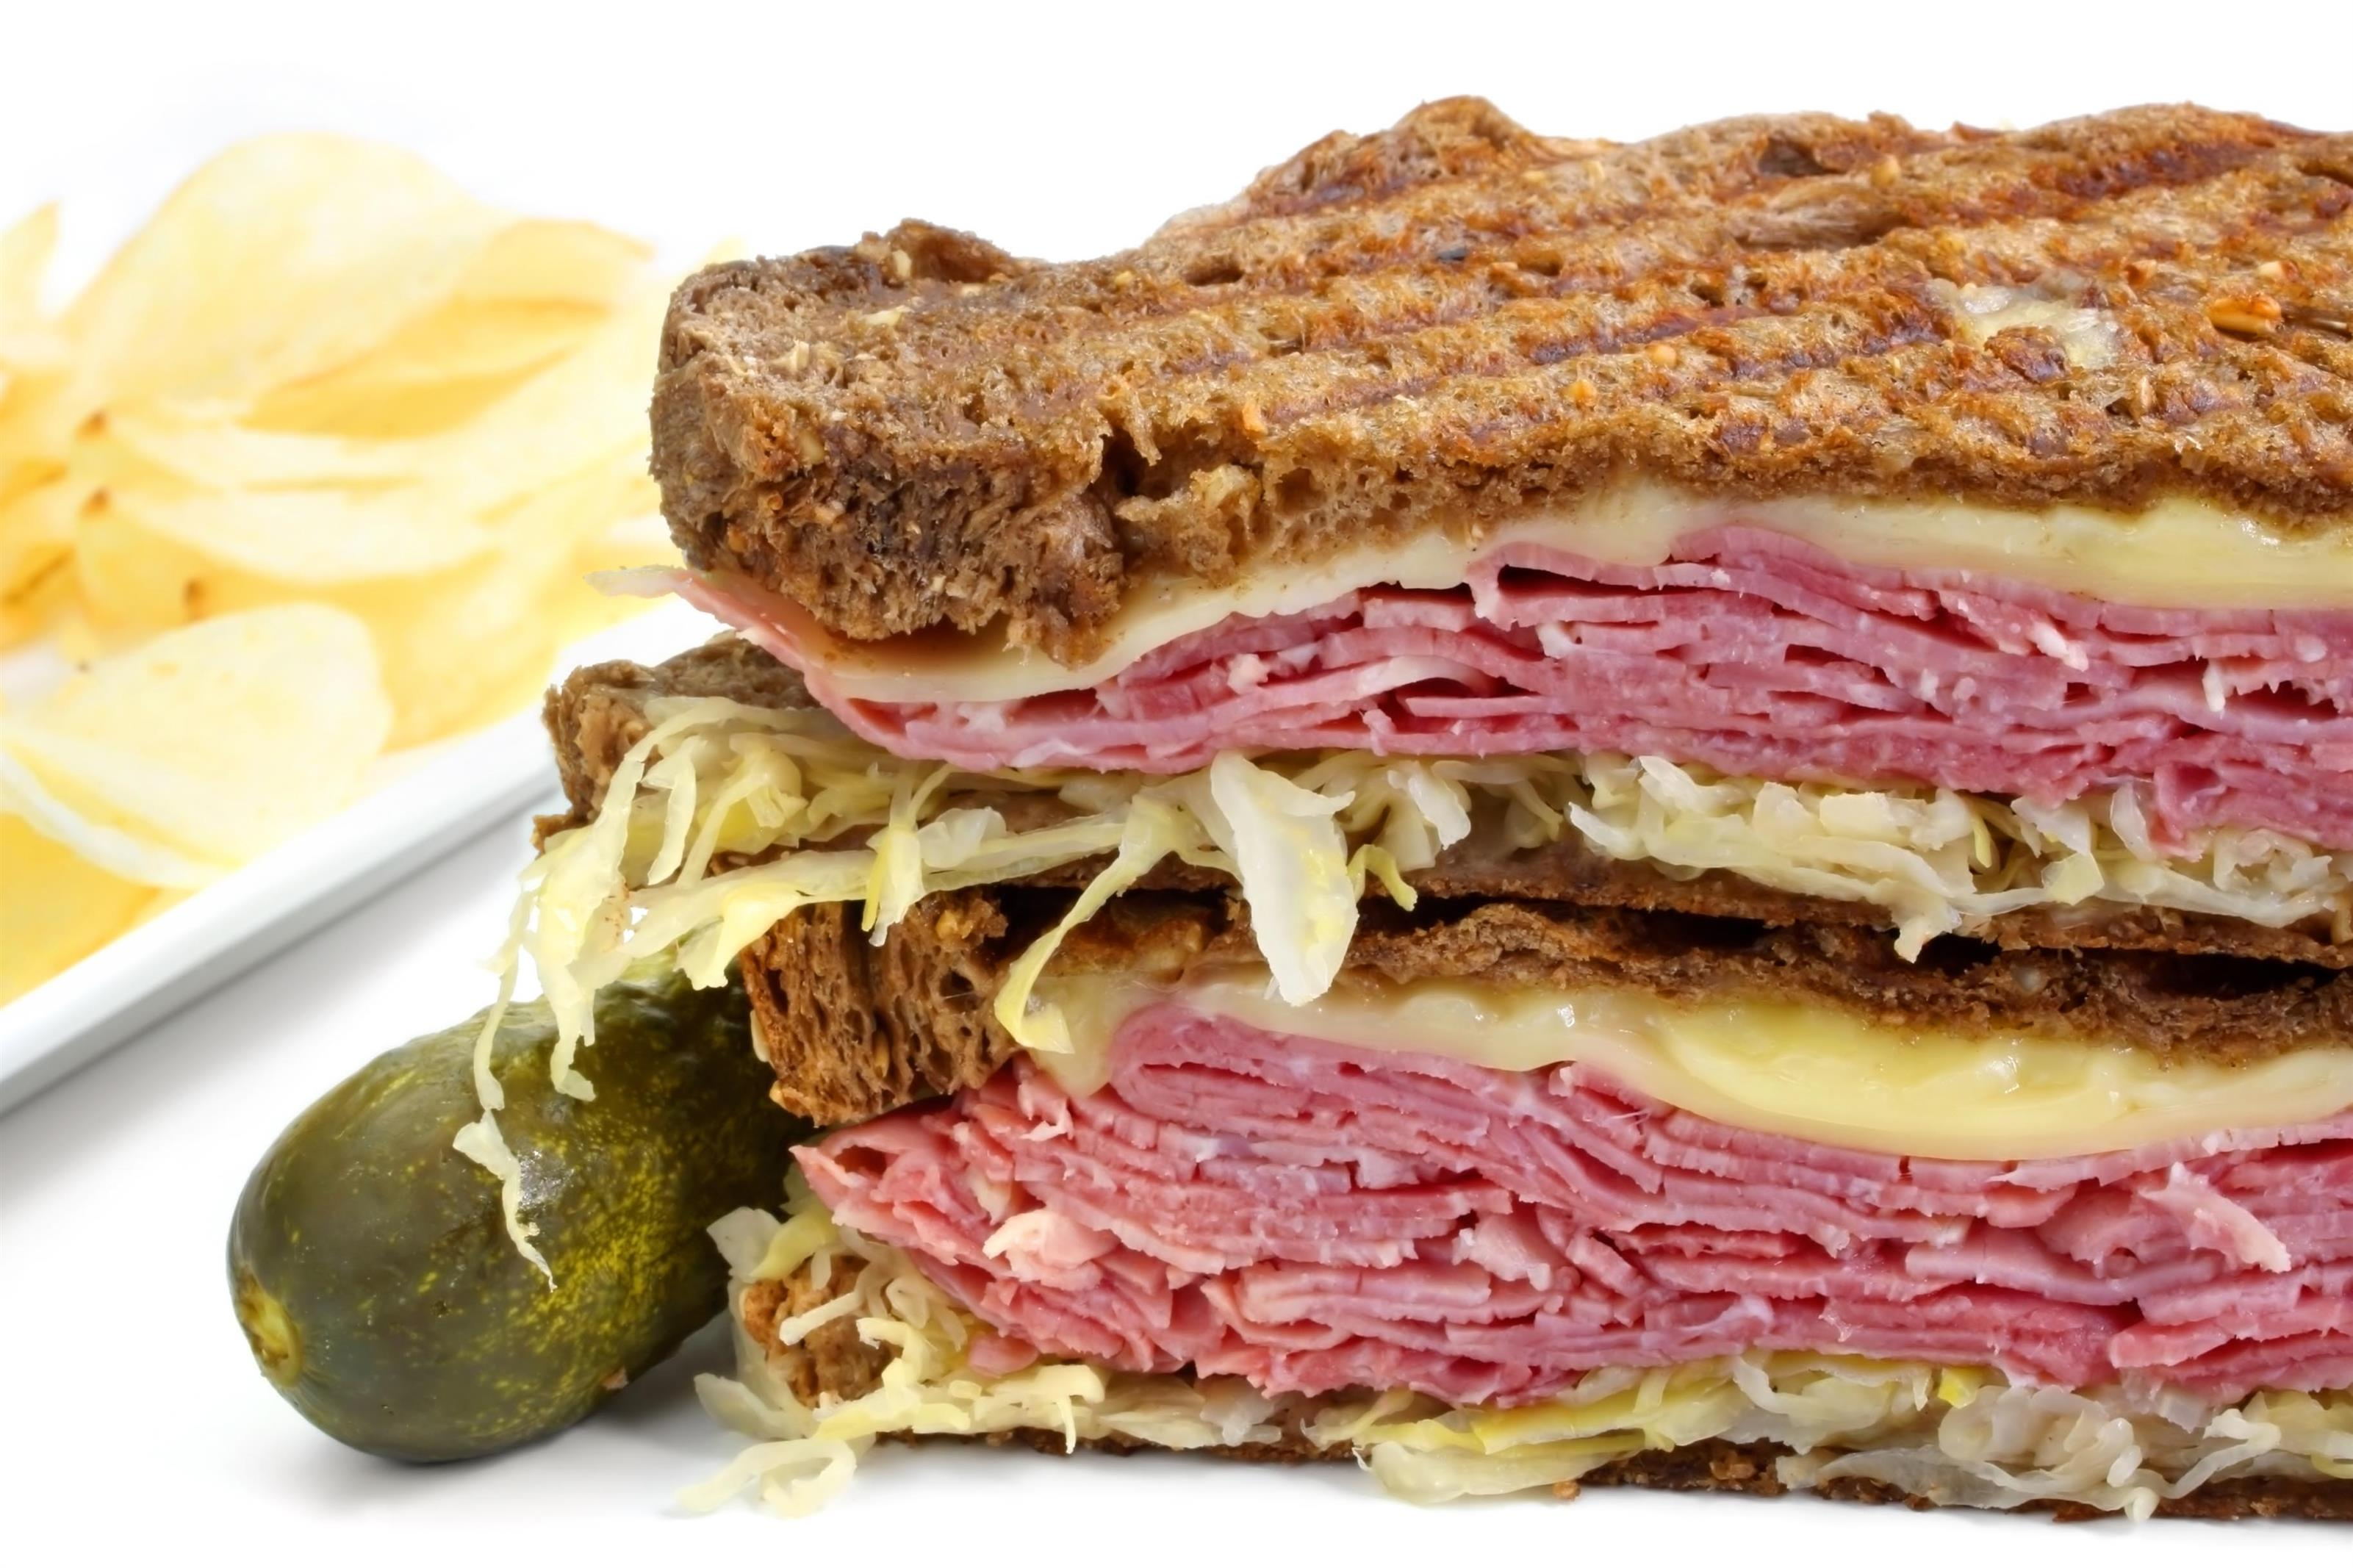 reuben sandwich with corned beef, coleslaw, and cheese on a toasted panini sandwich with pickles on the side